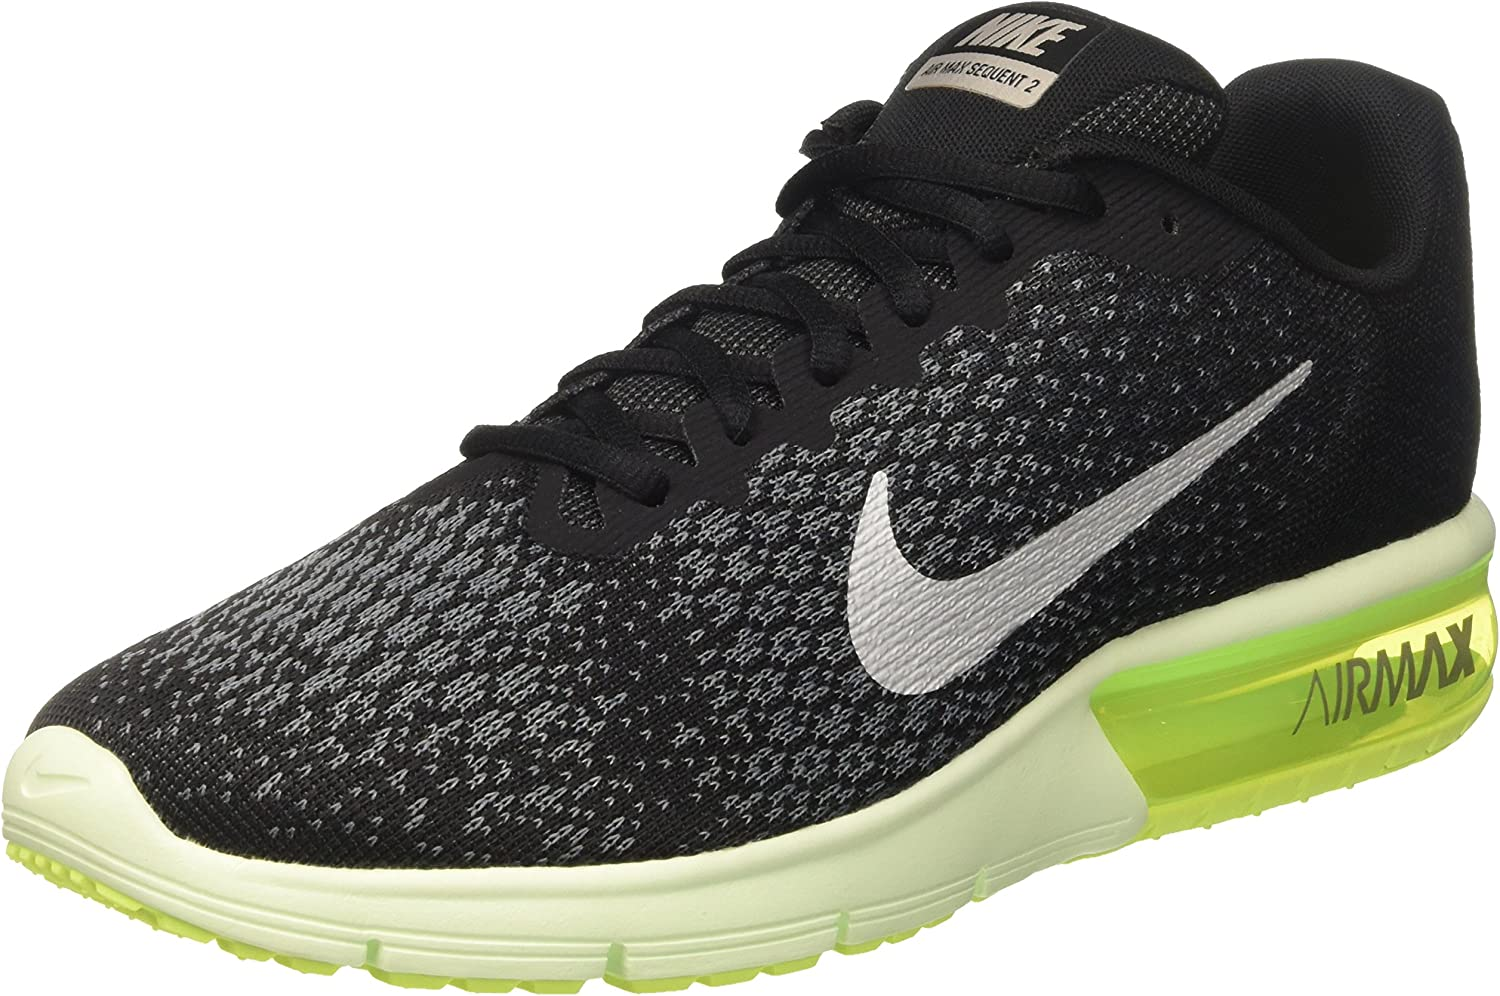 NIKE Air MAX Sequent 2, Zapatillas de Running para Hombre: Amazon.es: Zapatos y complementos